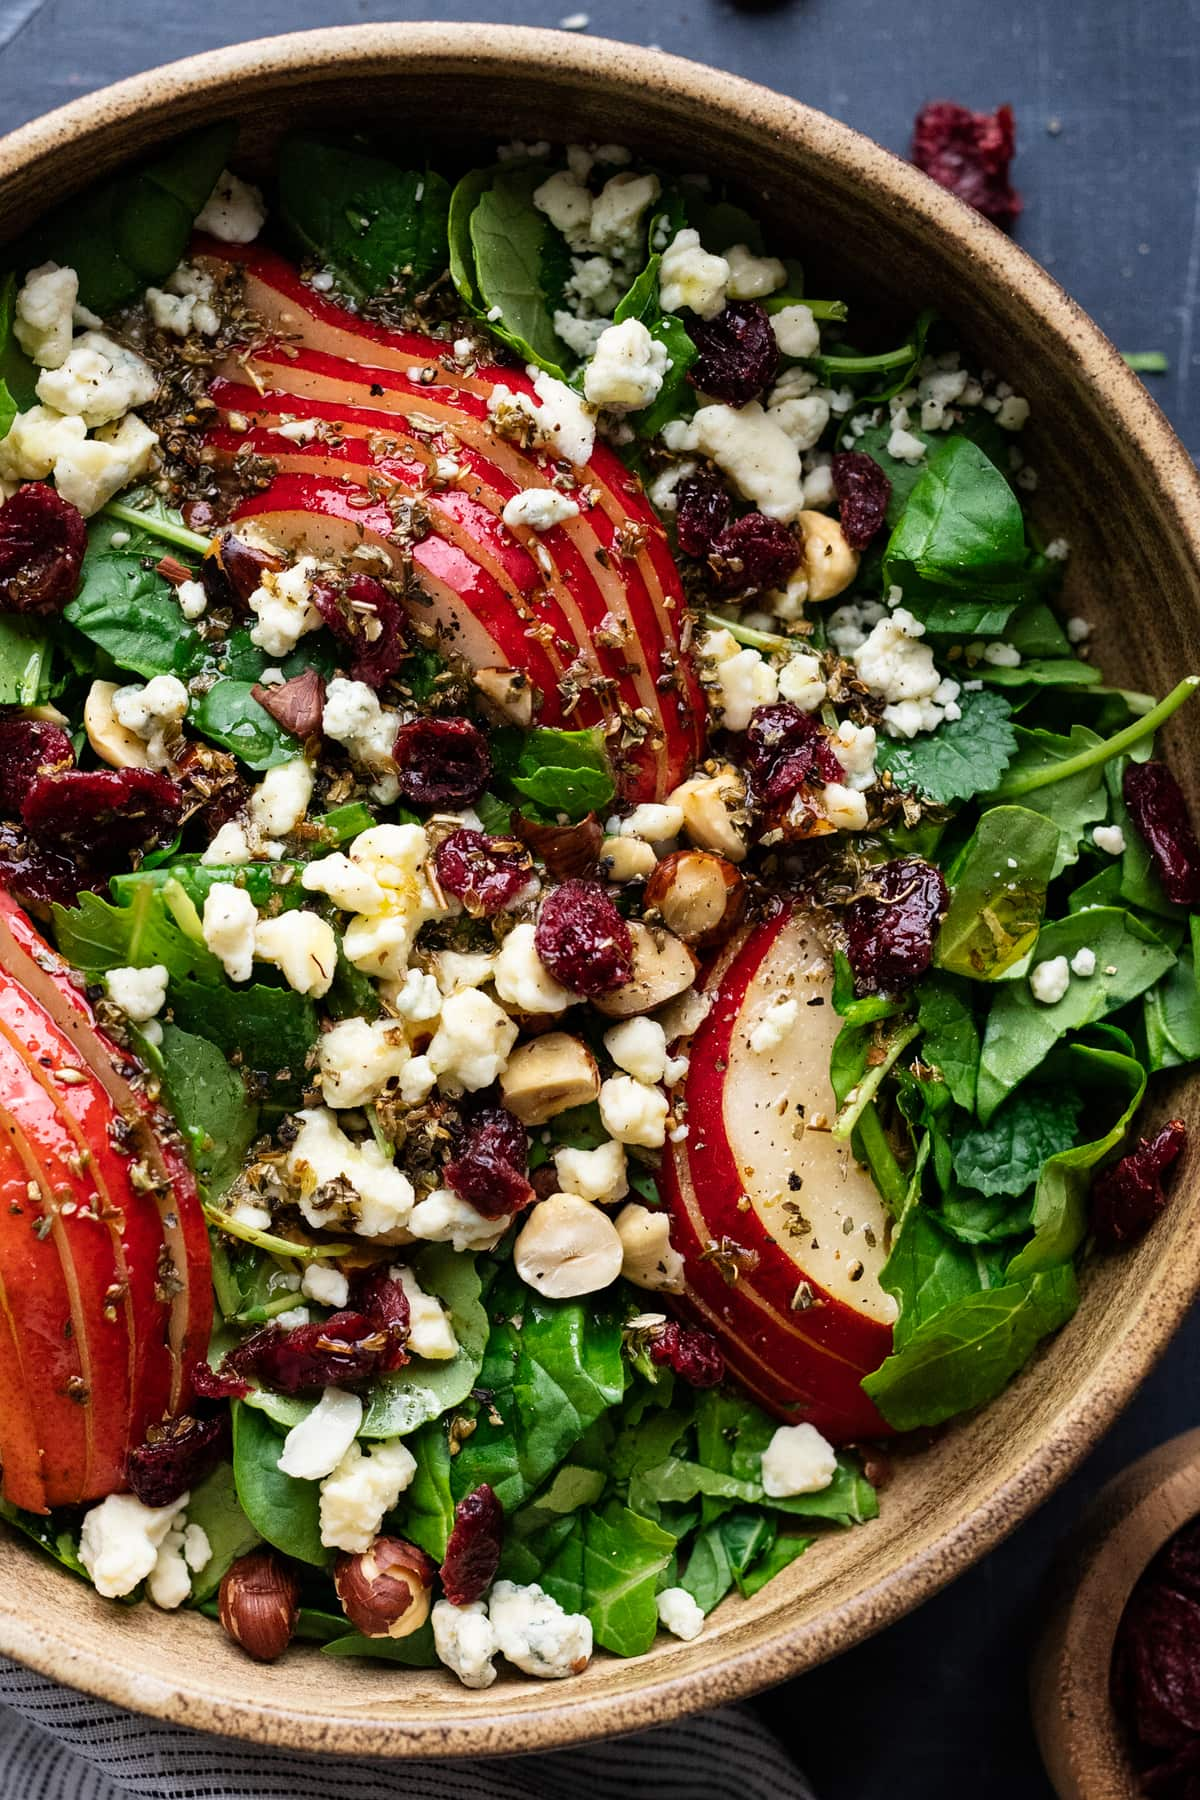 A bowl with pear salad in it on a bed of greens, with crumble cheese on top.